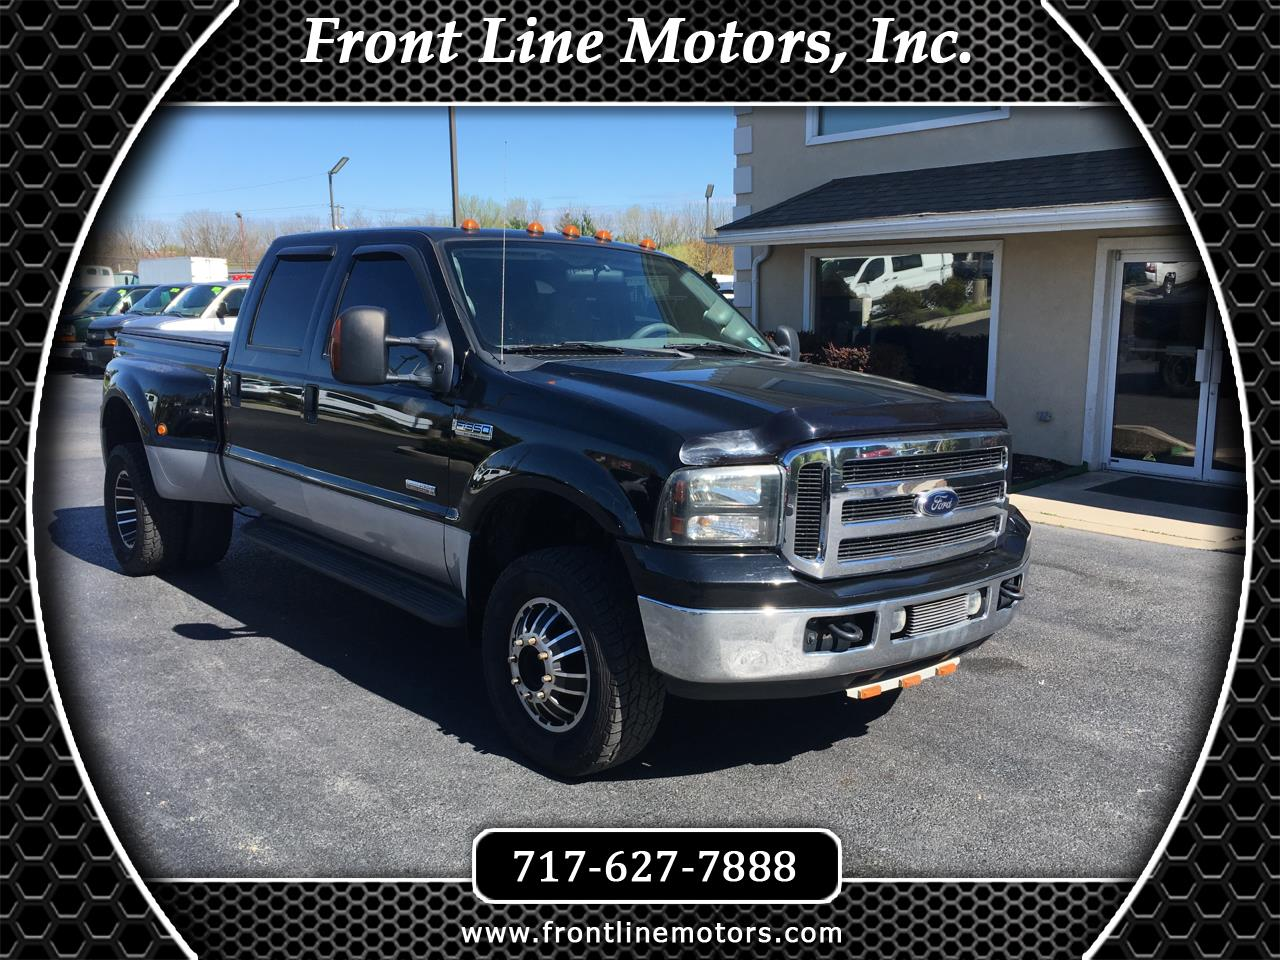 2005 Ford Super Duty F-350 DRW Crew Cab 156